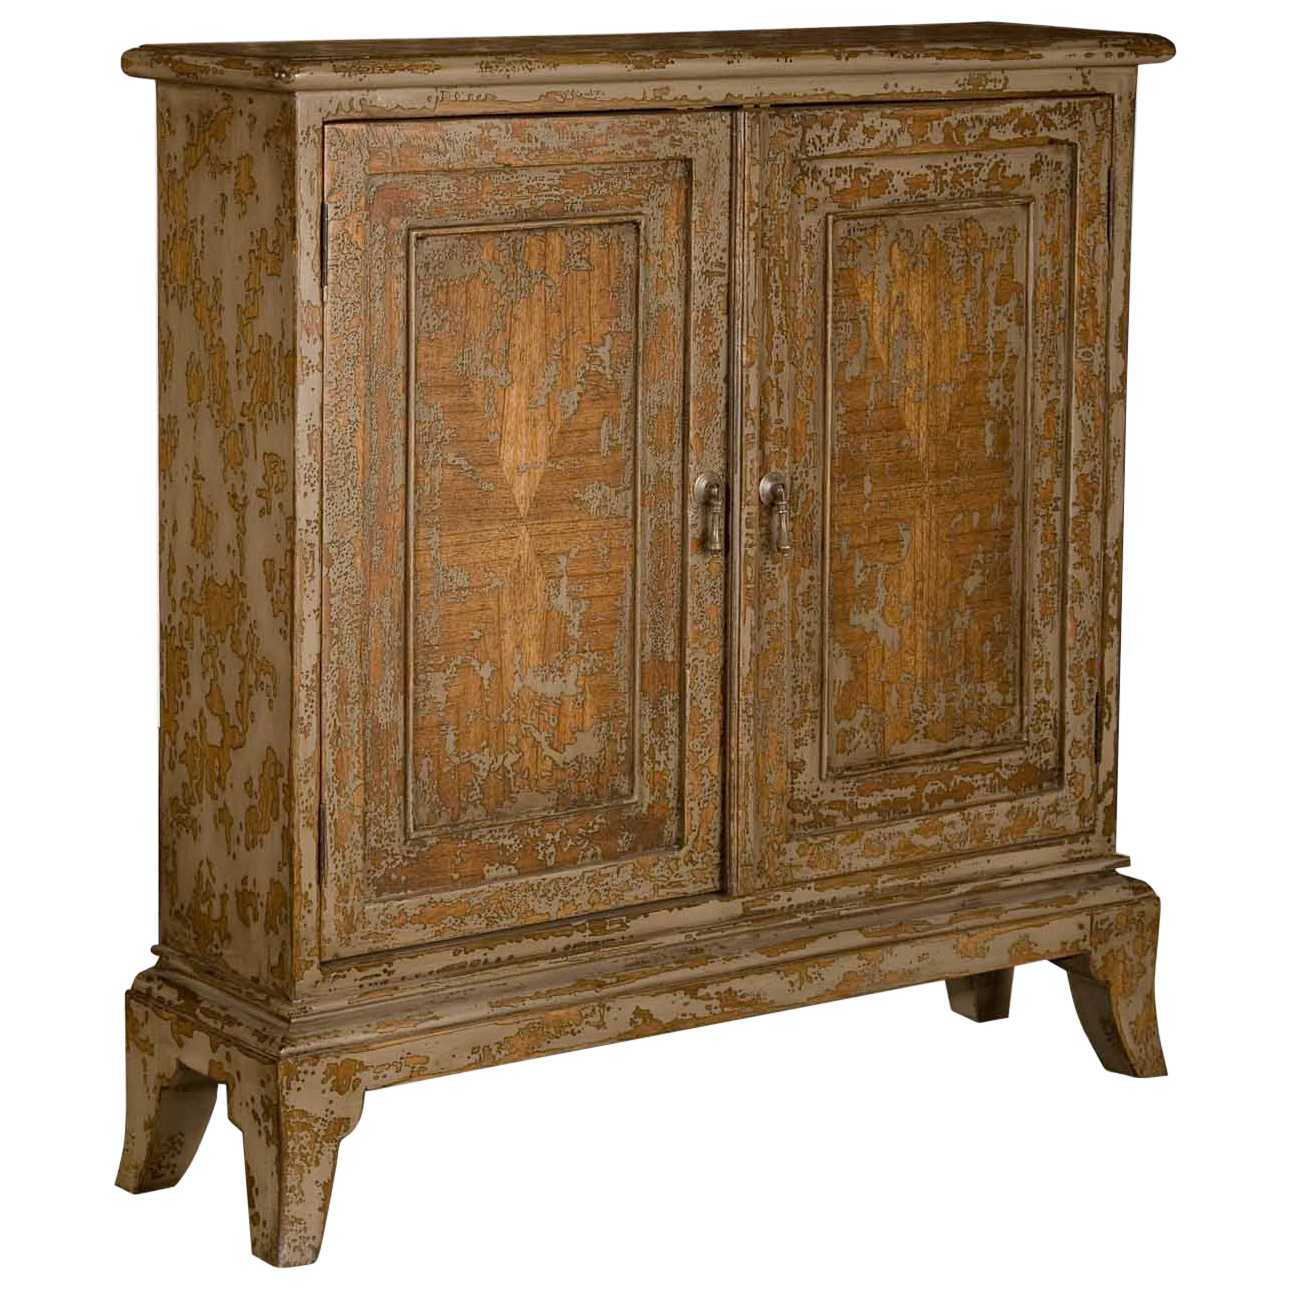 Monique French Country 2 Door Distressed Mahogany Wood Cabinet